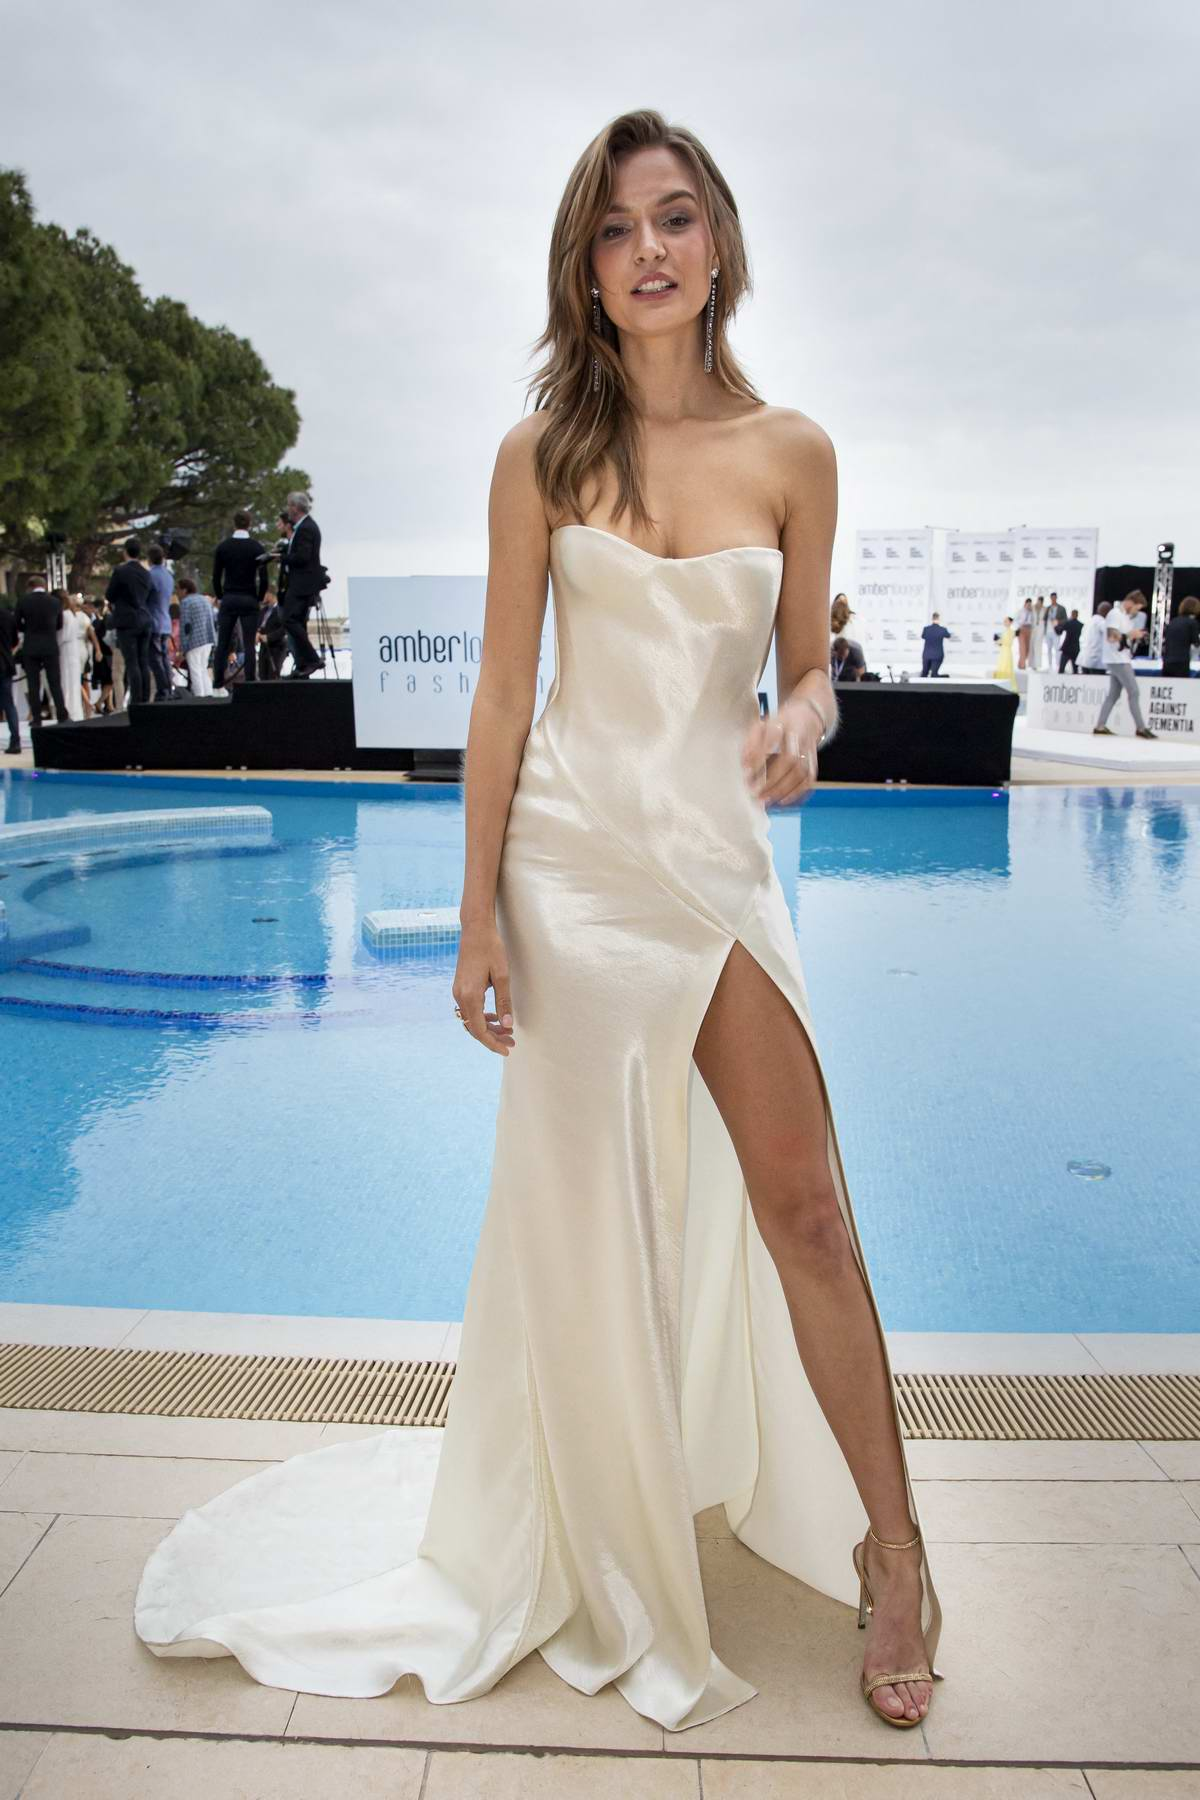 Josephine Skriver attends the Amber Lounge Fashion show held at the Hotel Meridien in Monte Carlo, Monaco